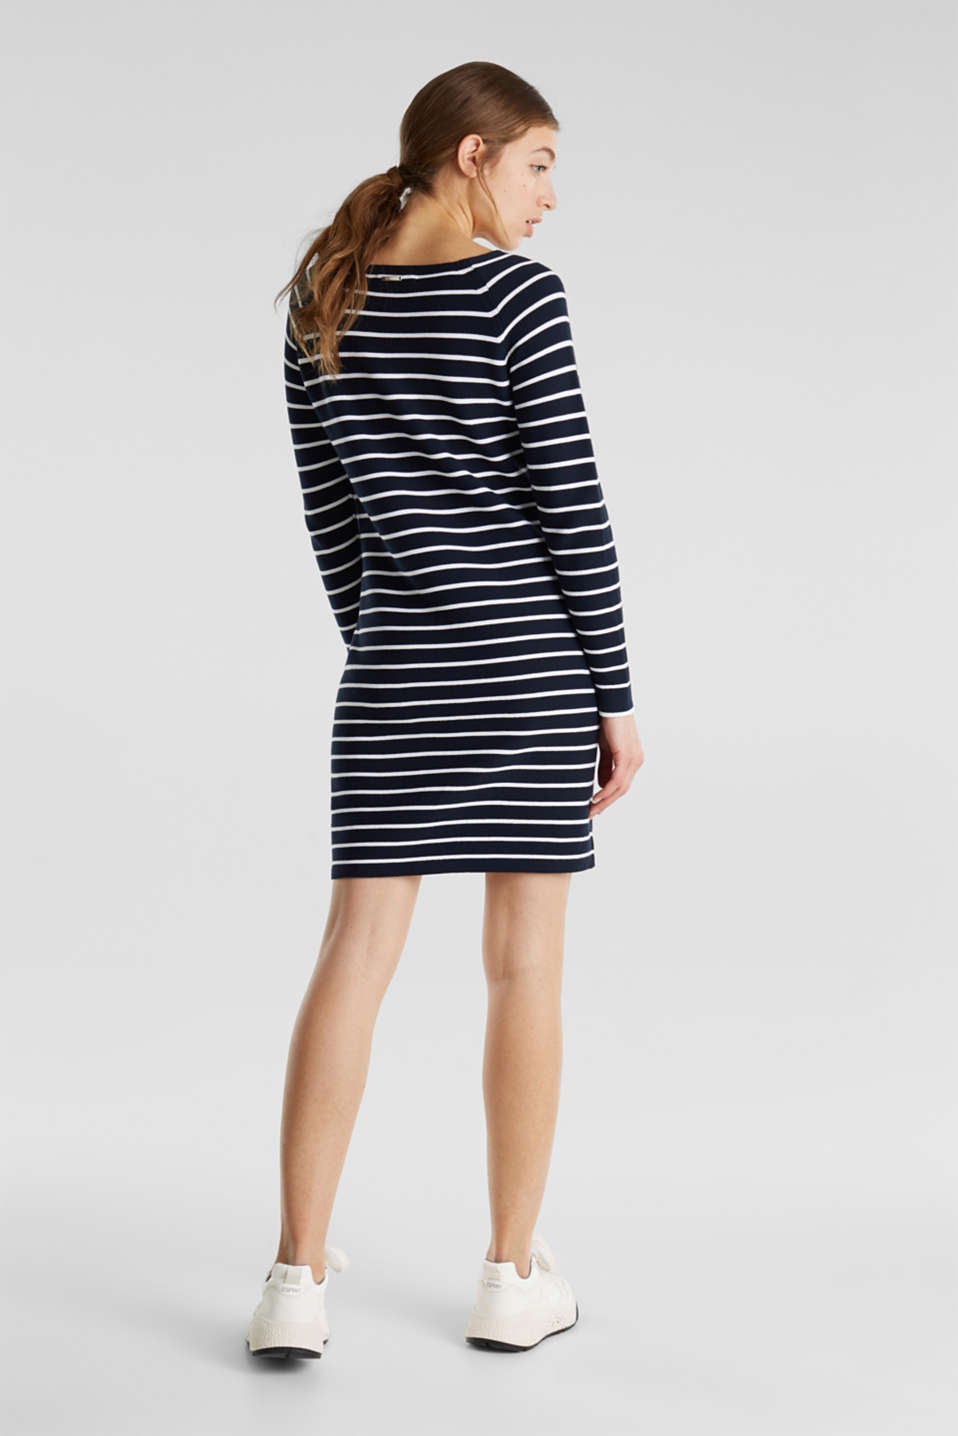 Knit dress with stripes, 100% cotton, NAVY 4, detail image number 2